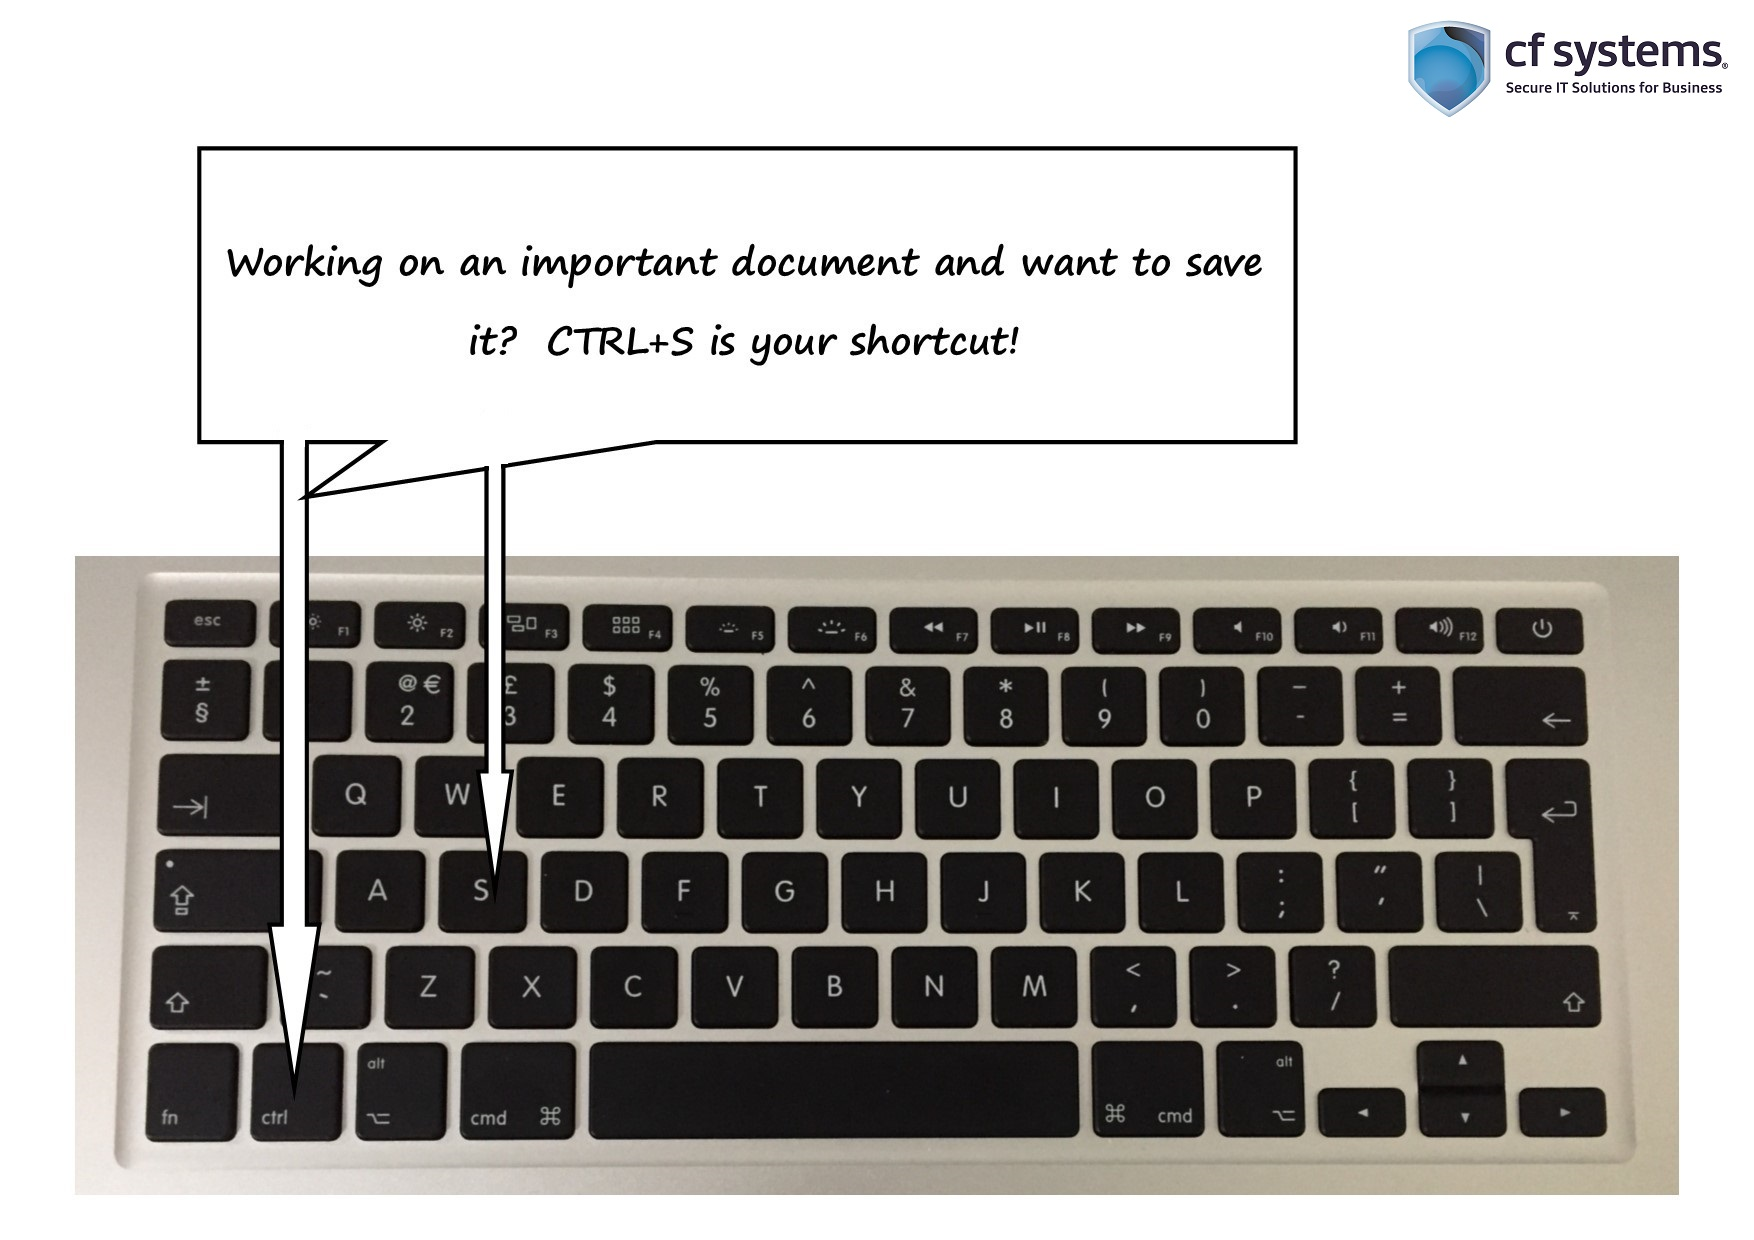 Did you know? You can save a document by simply using your keyboard!